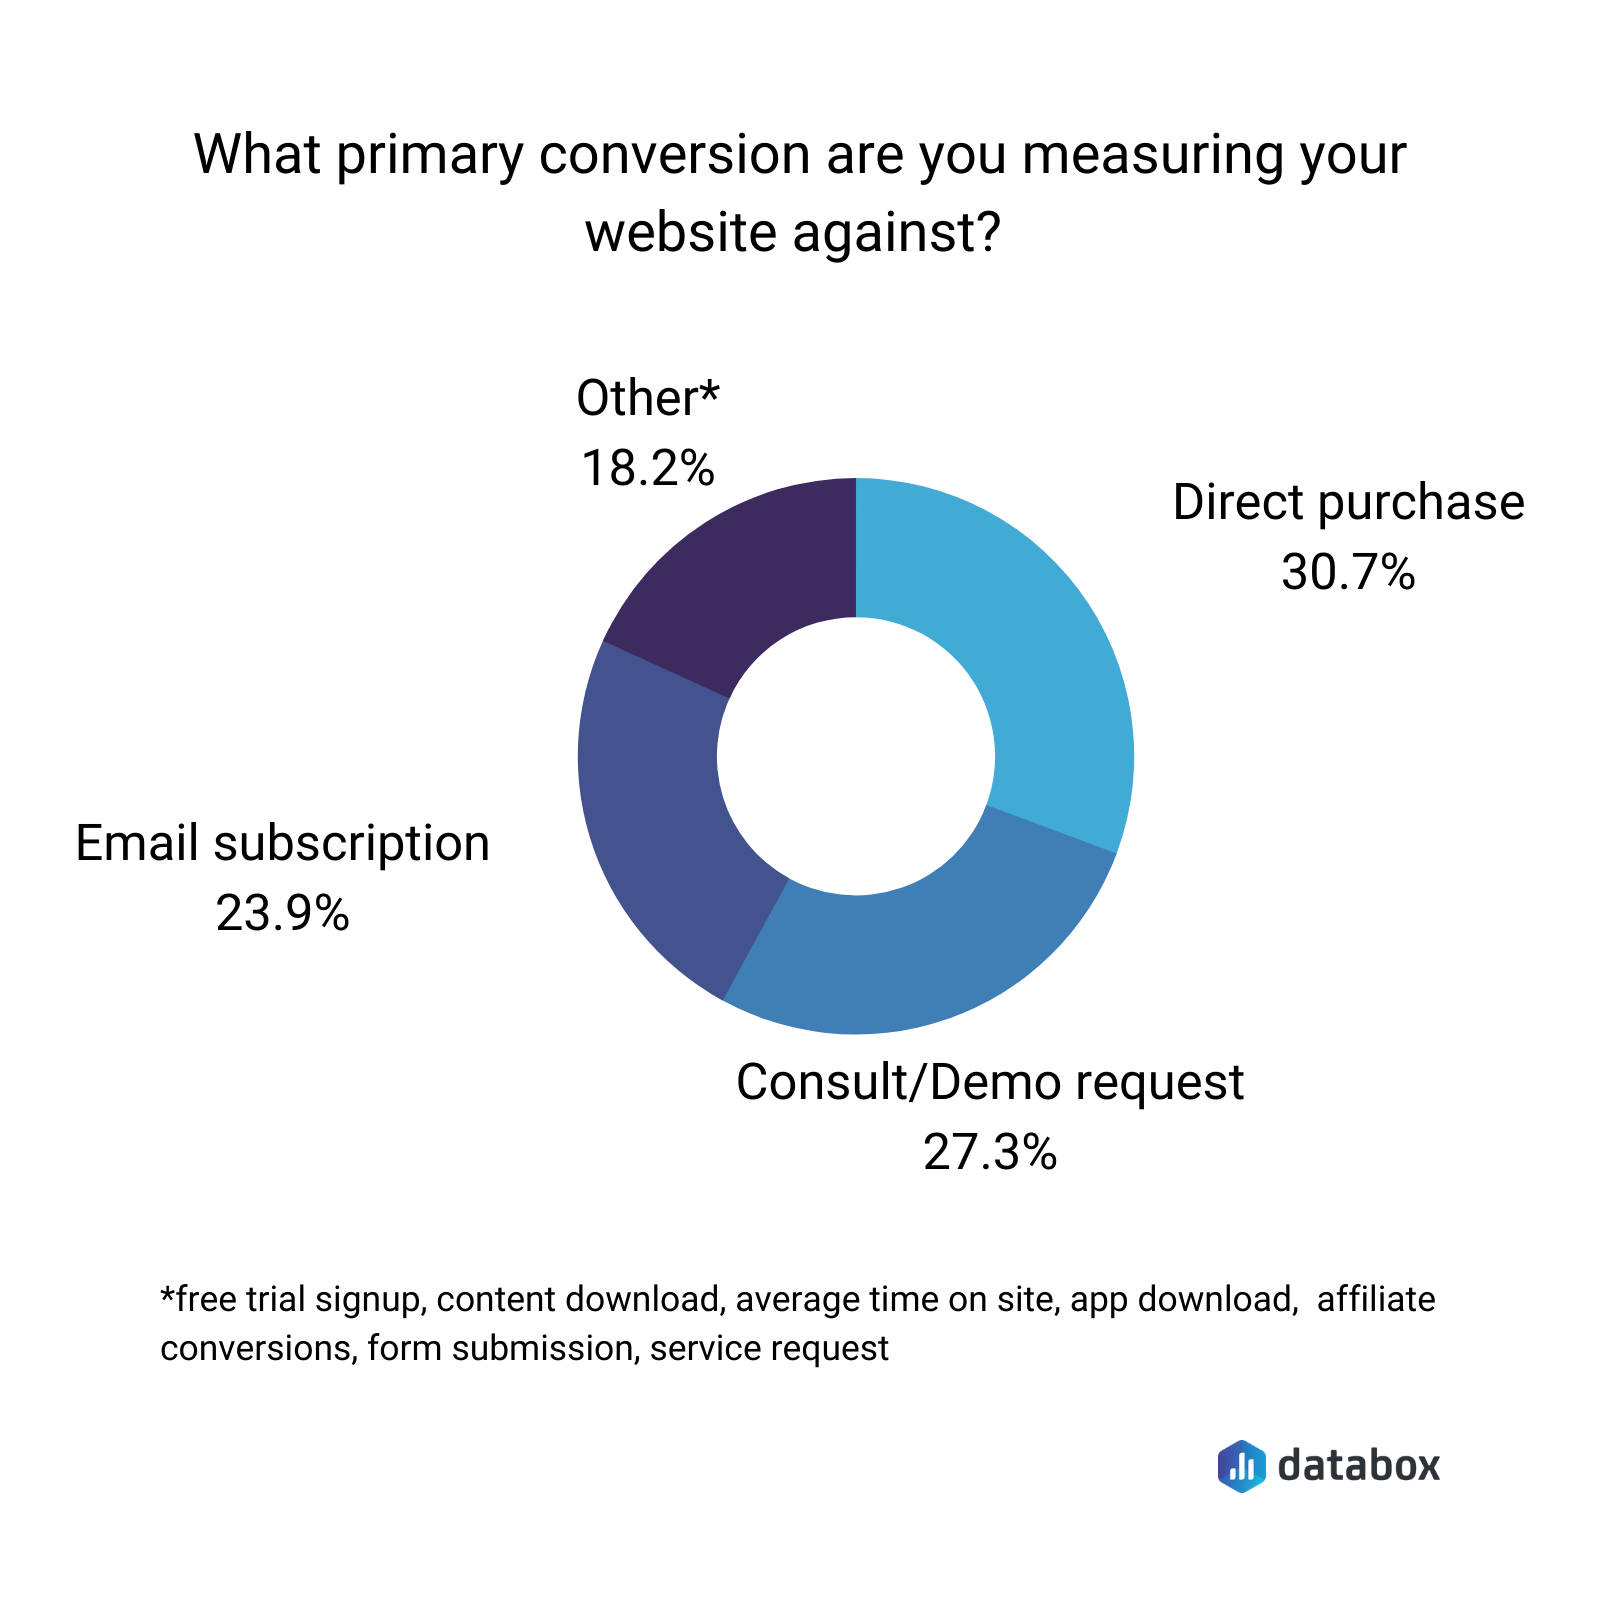 Wat primary conversion are you measuring your website against?